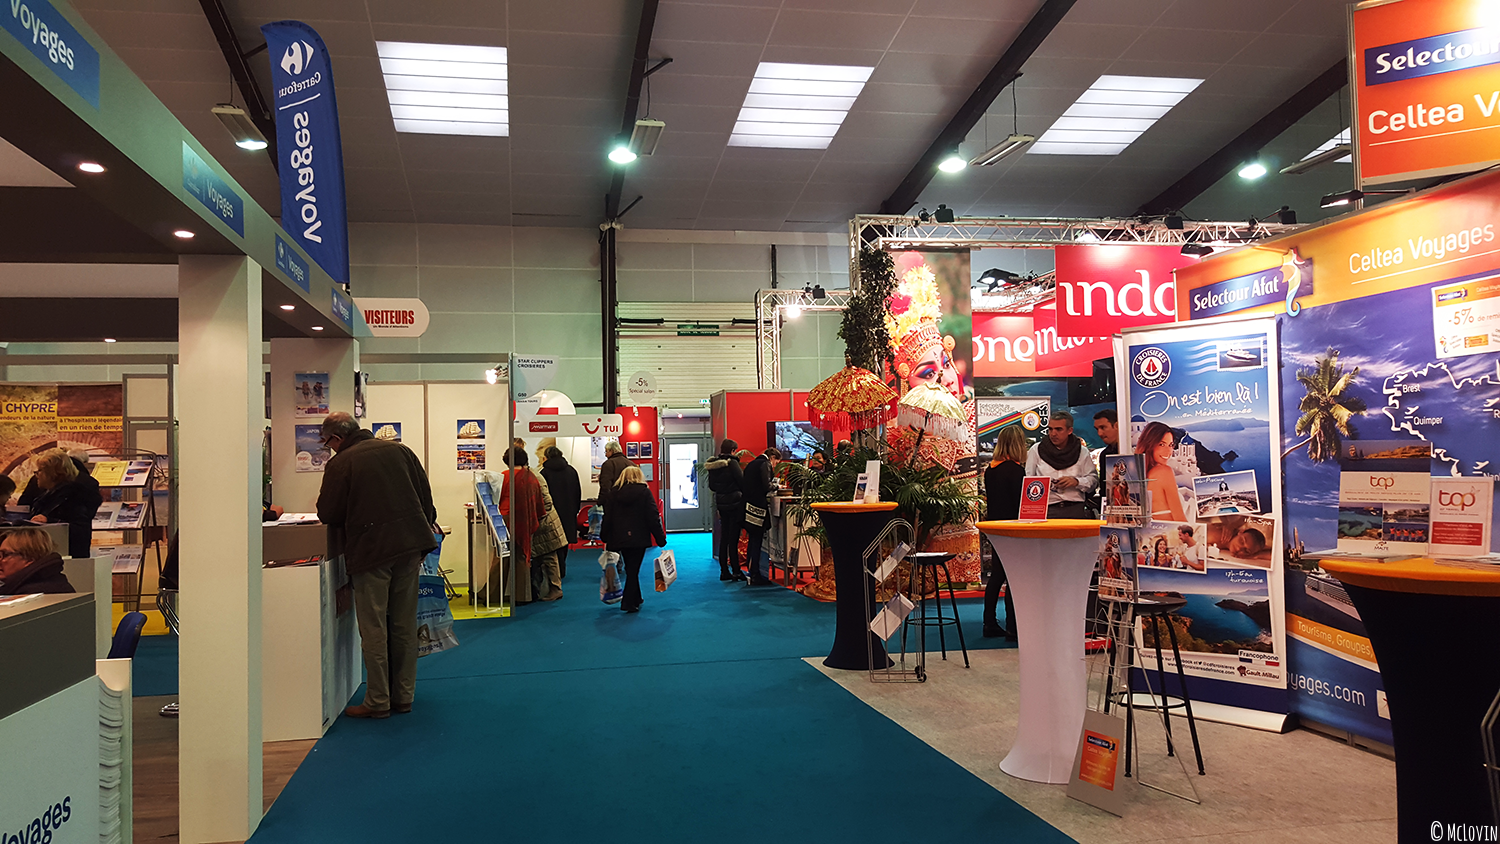 Salon international du tourisme rennes mclovin not war - Salon international du tourisme rennes ...